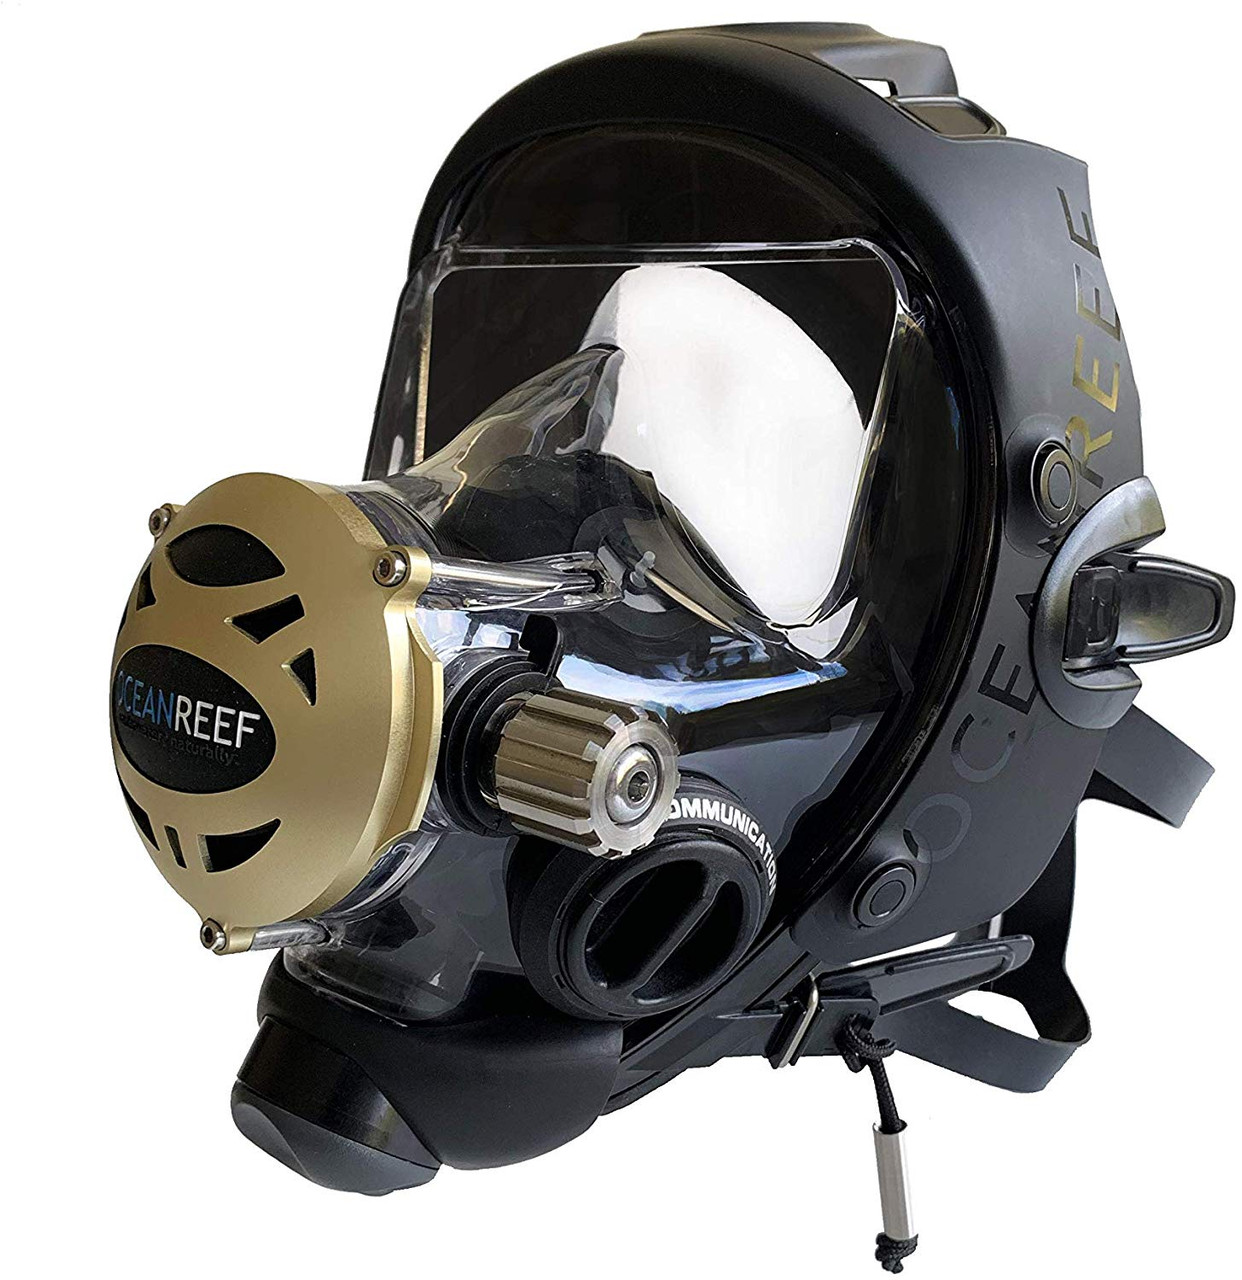 Ocean Reef Predator Extender Divers Full Face Diving Mask